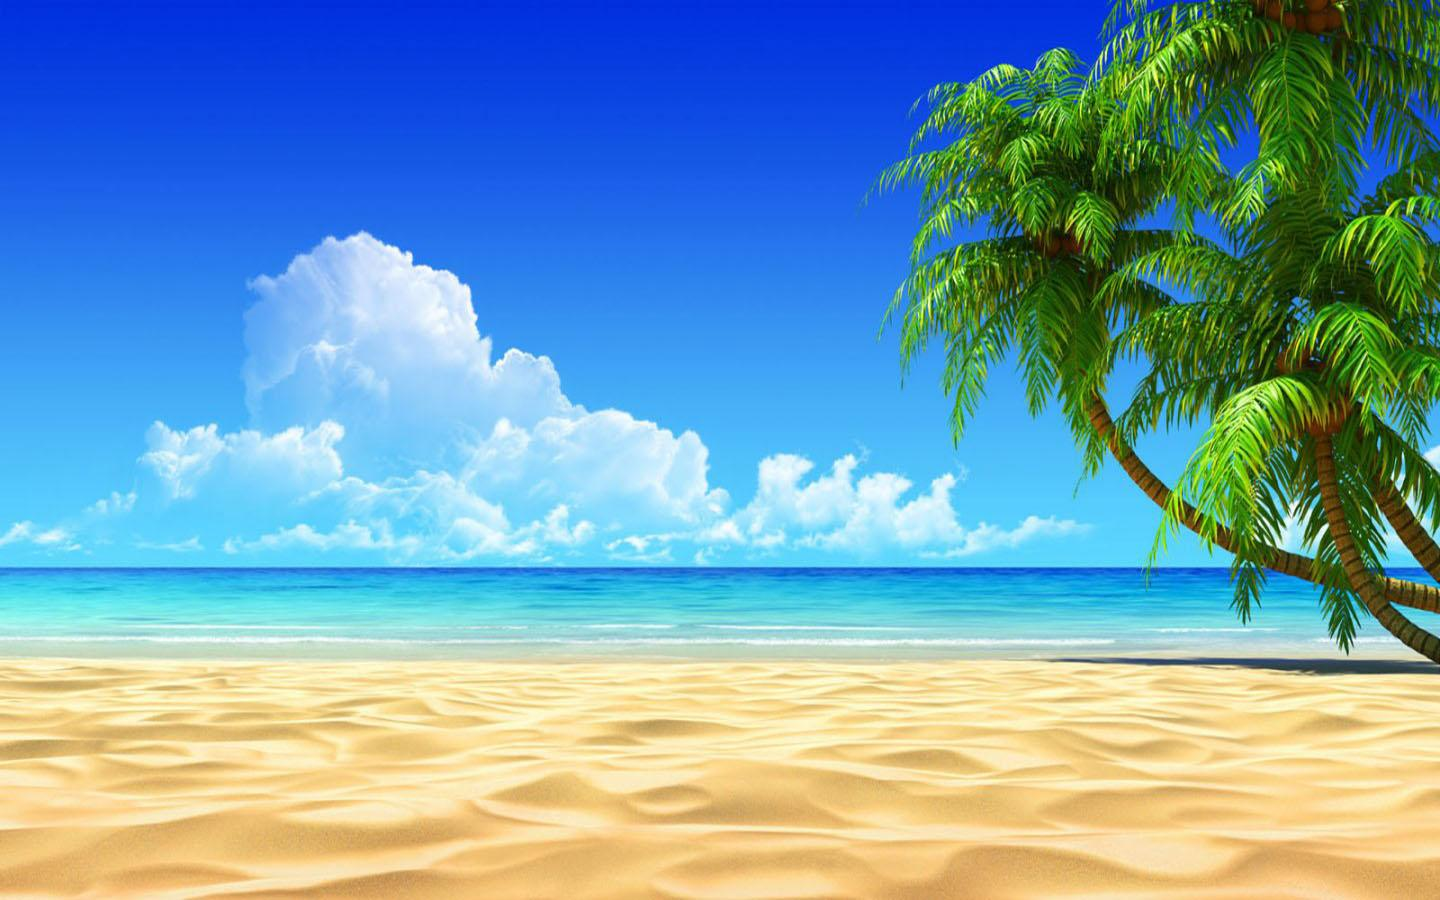 google florida beach wallpaper - photo #16